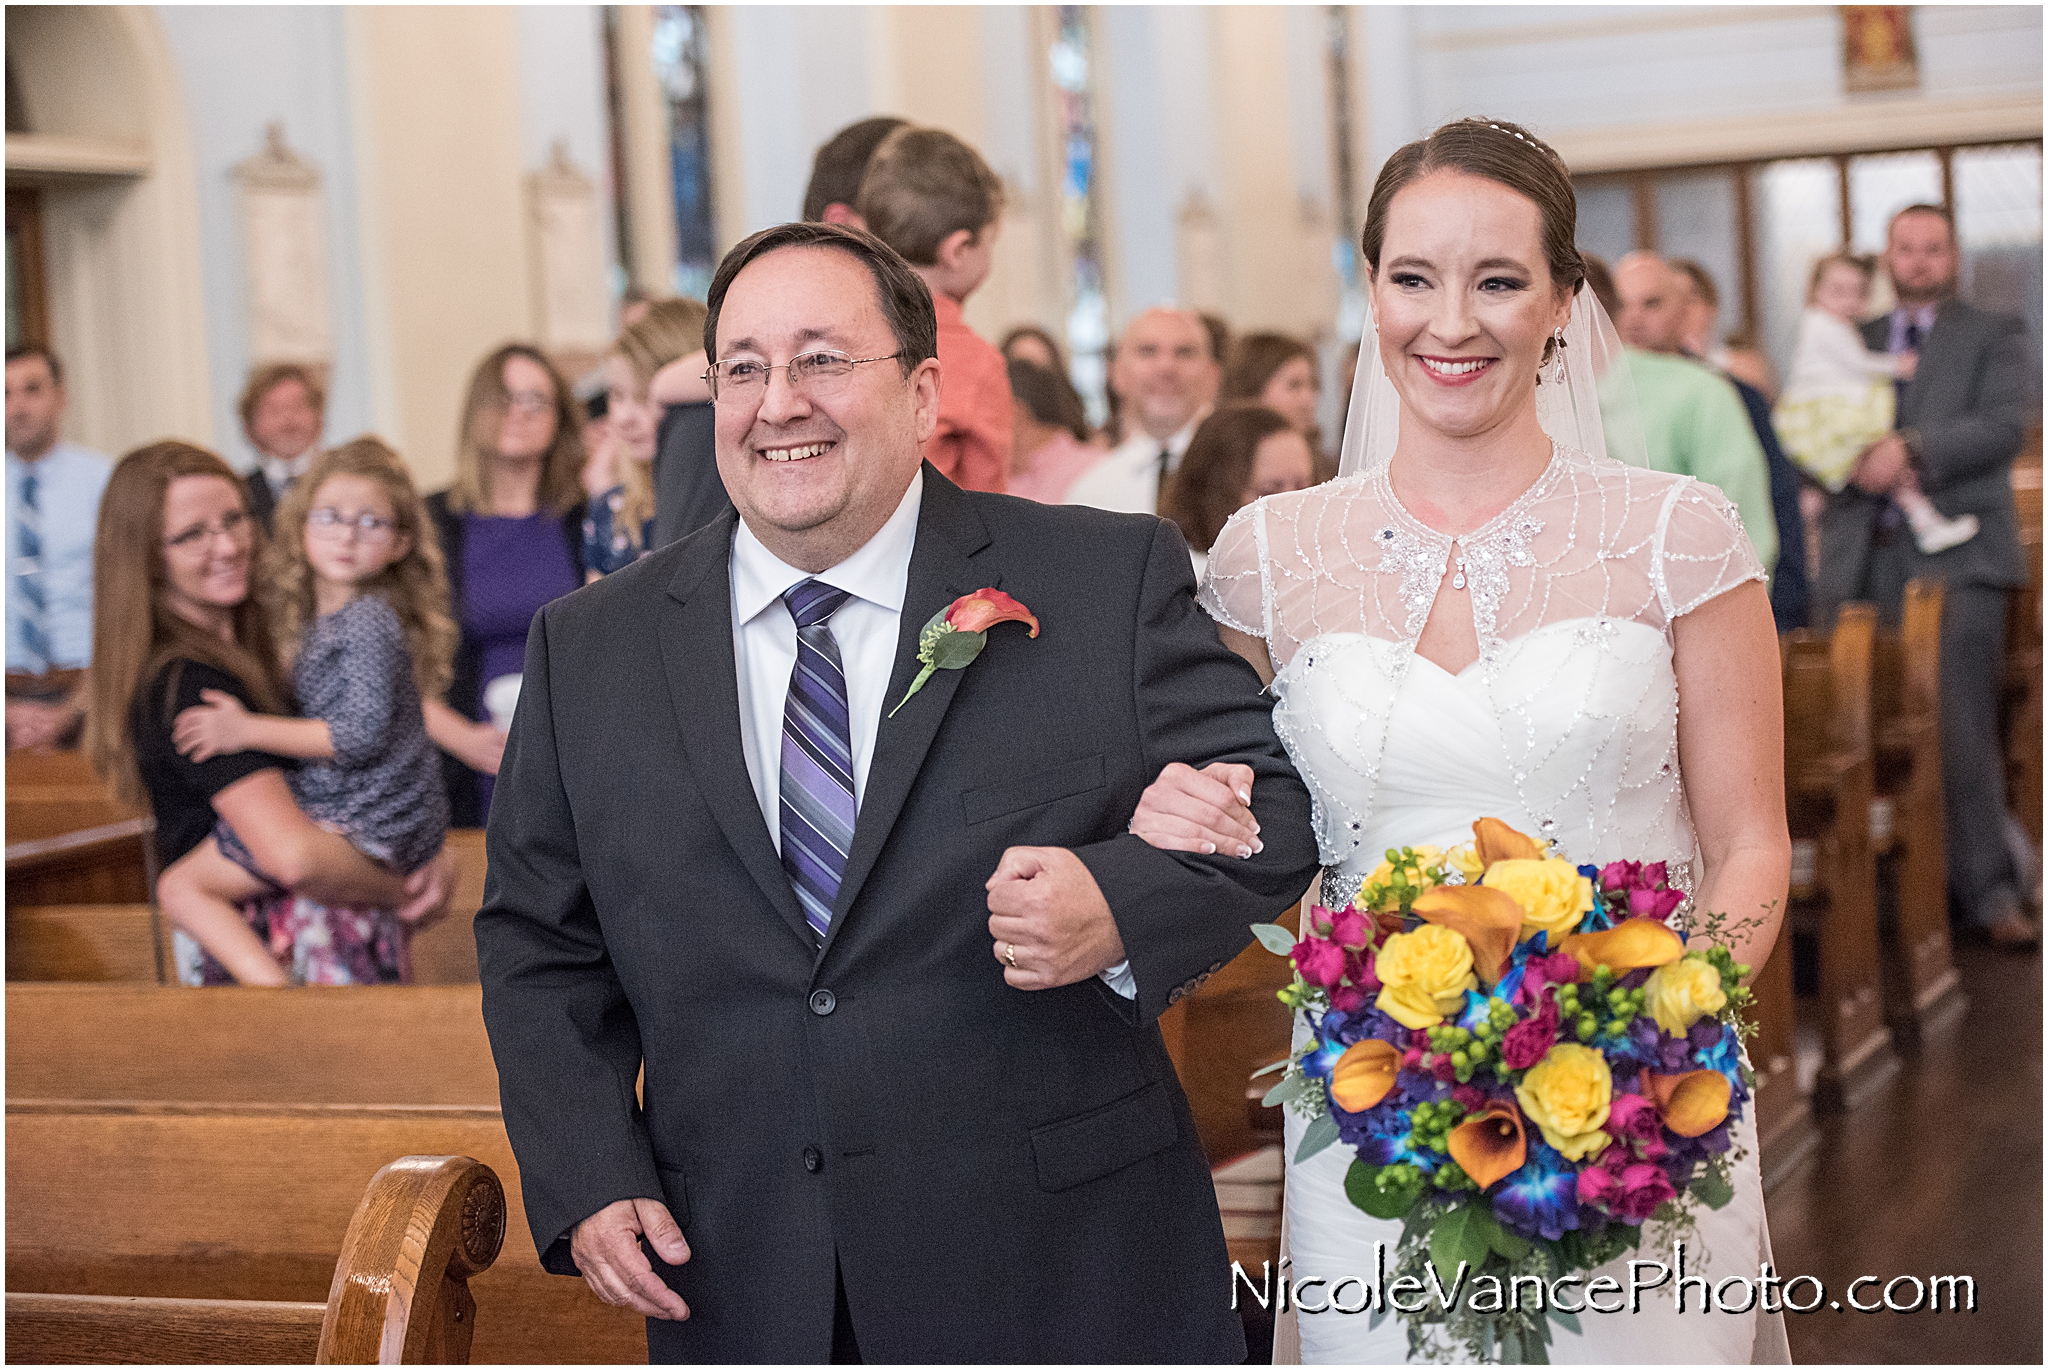 The bride makes an entrance at St Peter's Catholic Church, in Richmond Virginia.